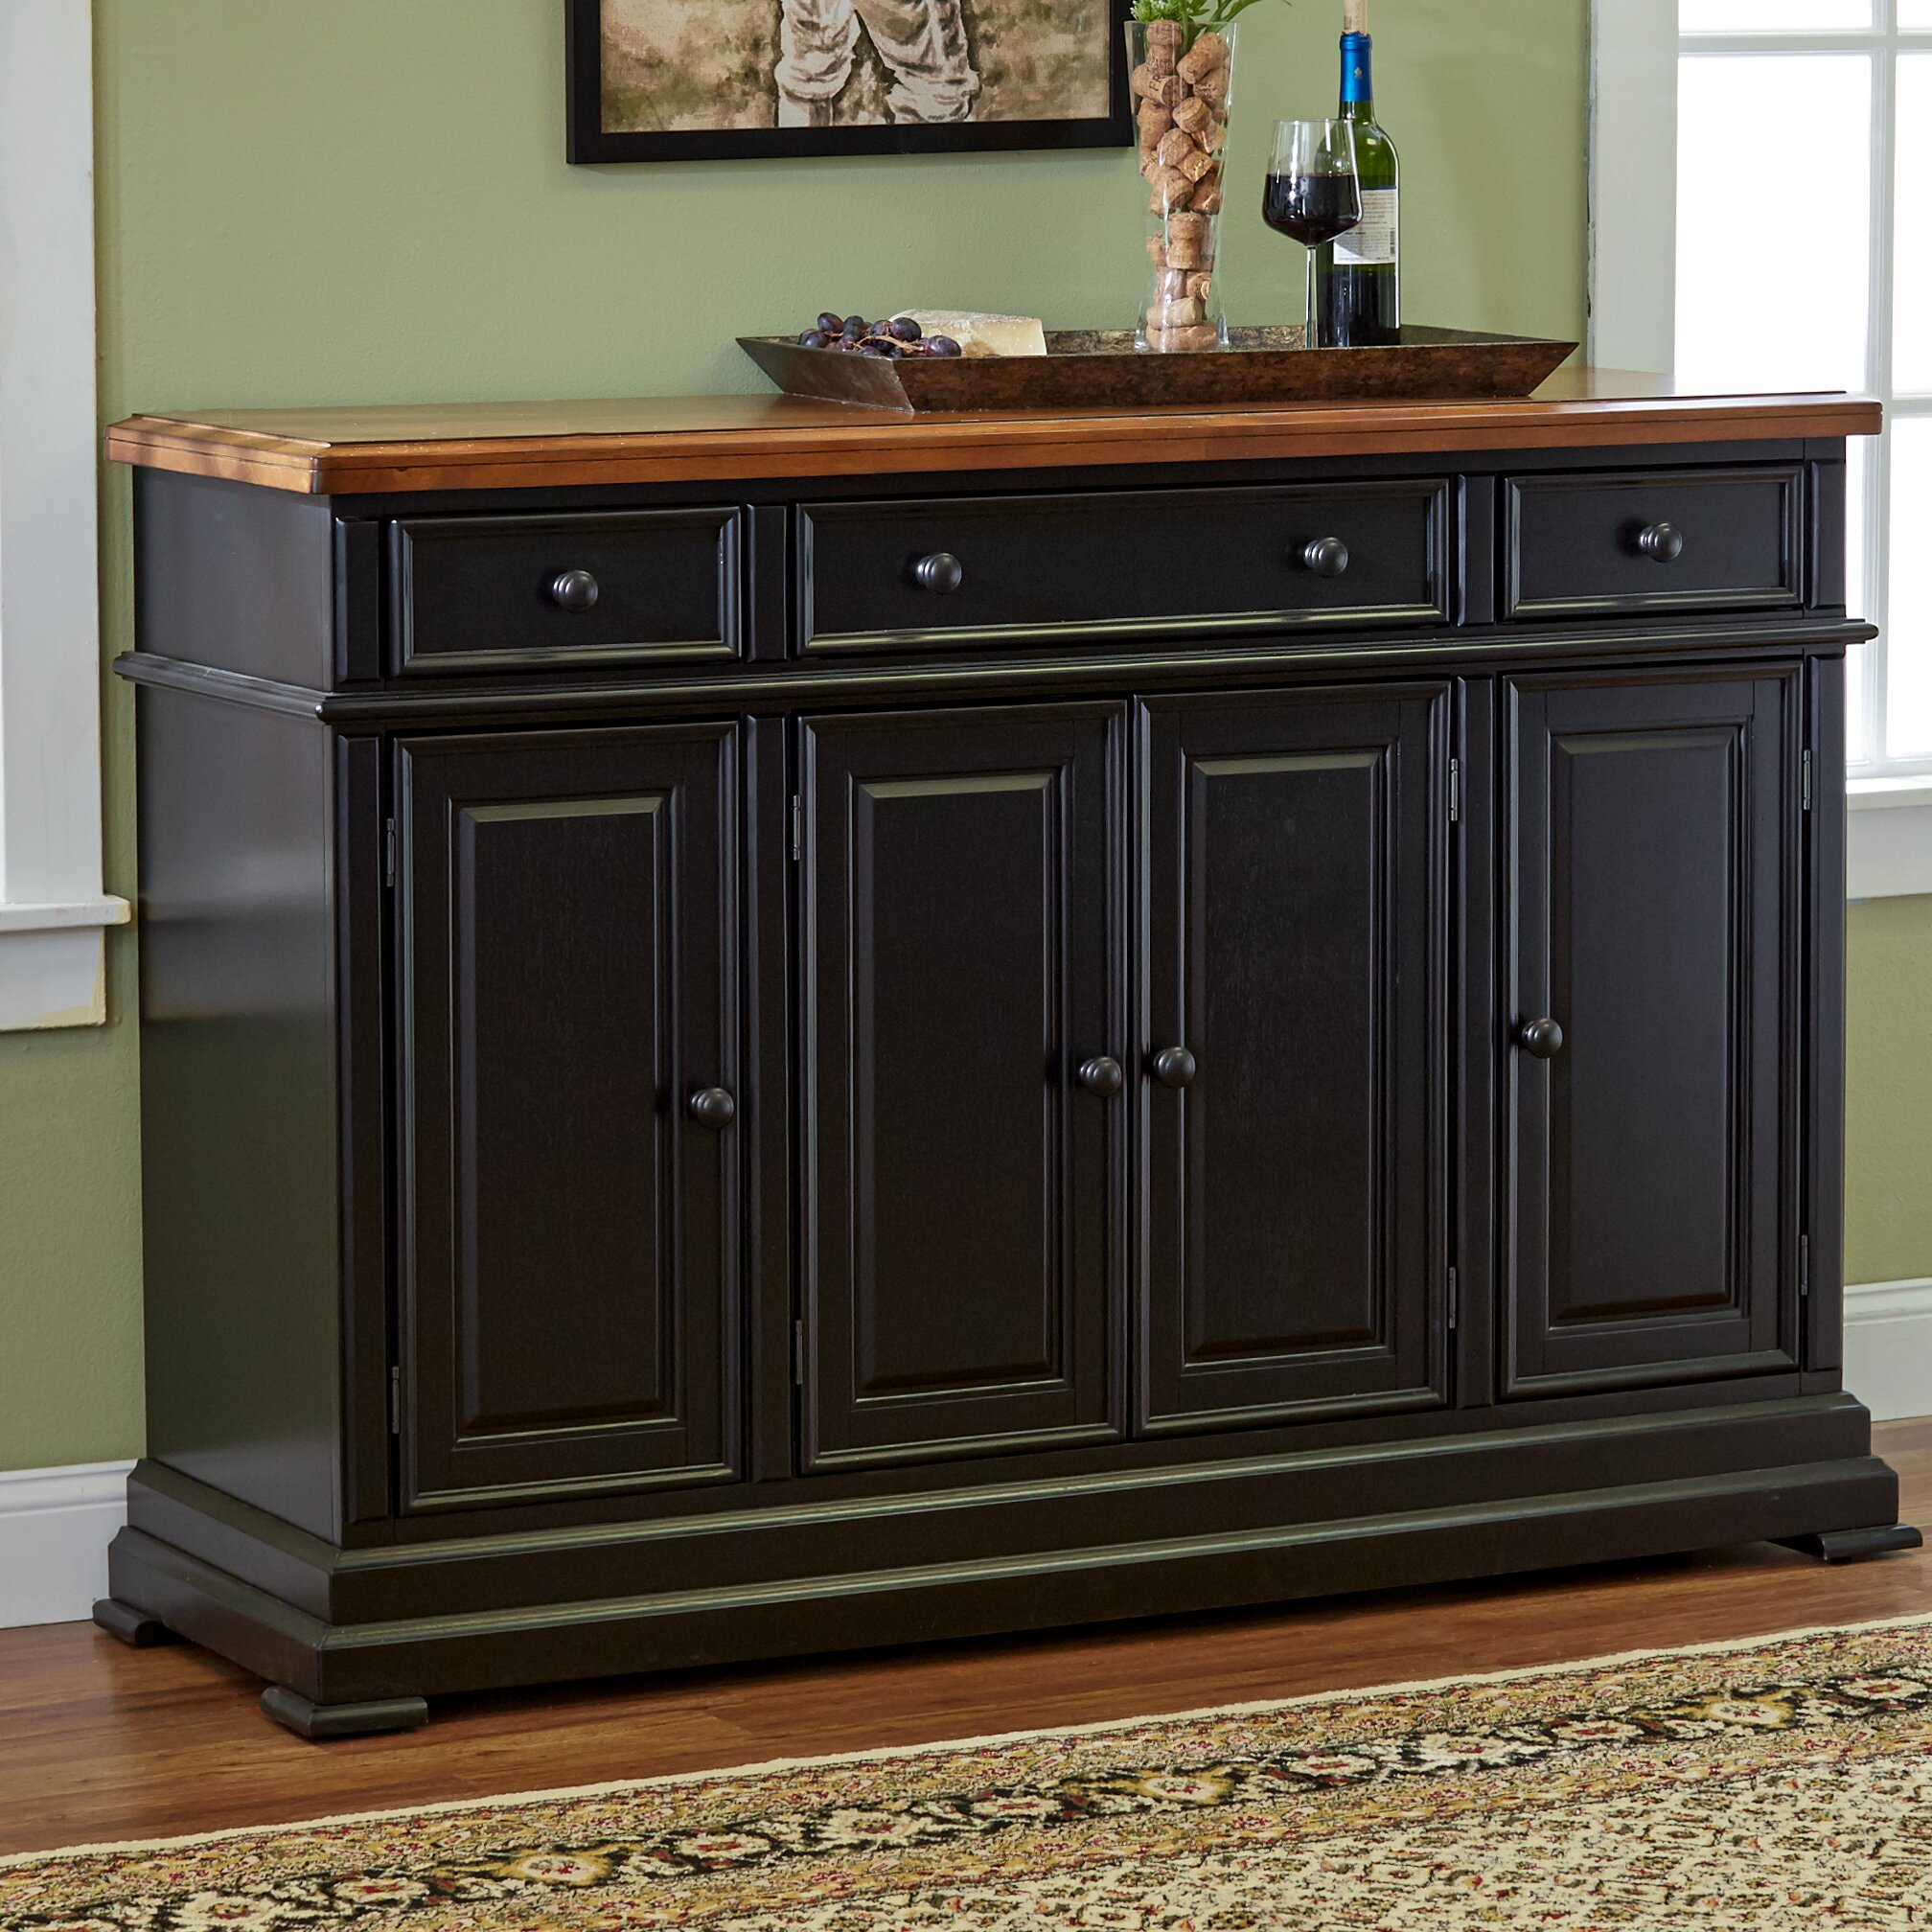 Warefair Com: Three Posts Courtdale Sideboard & Reviews